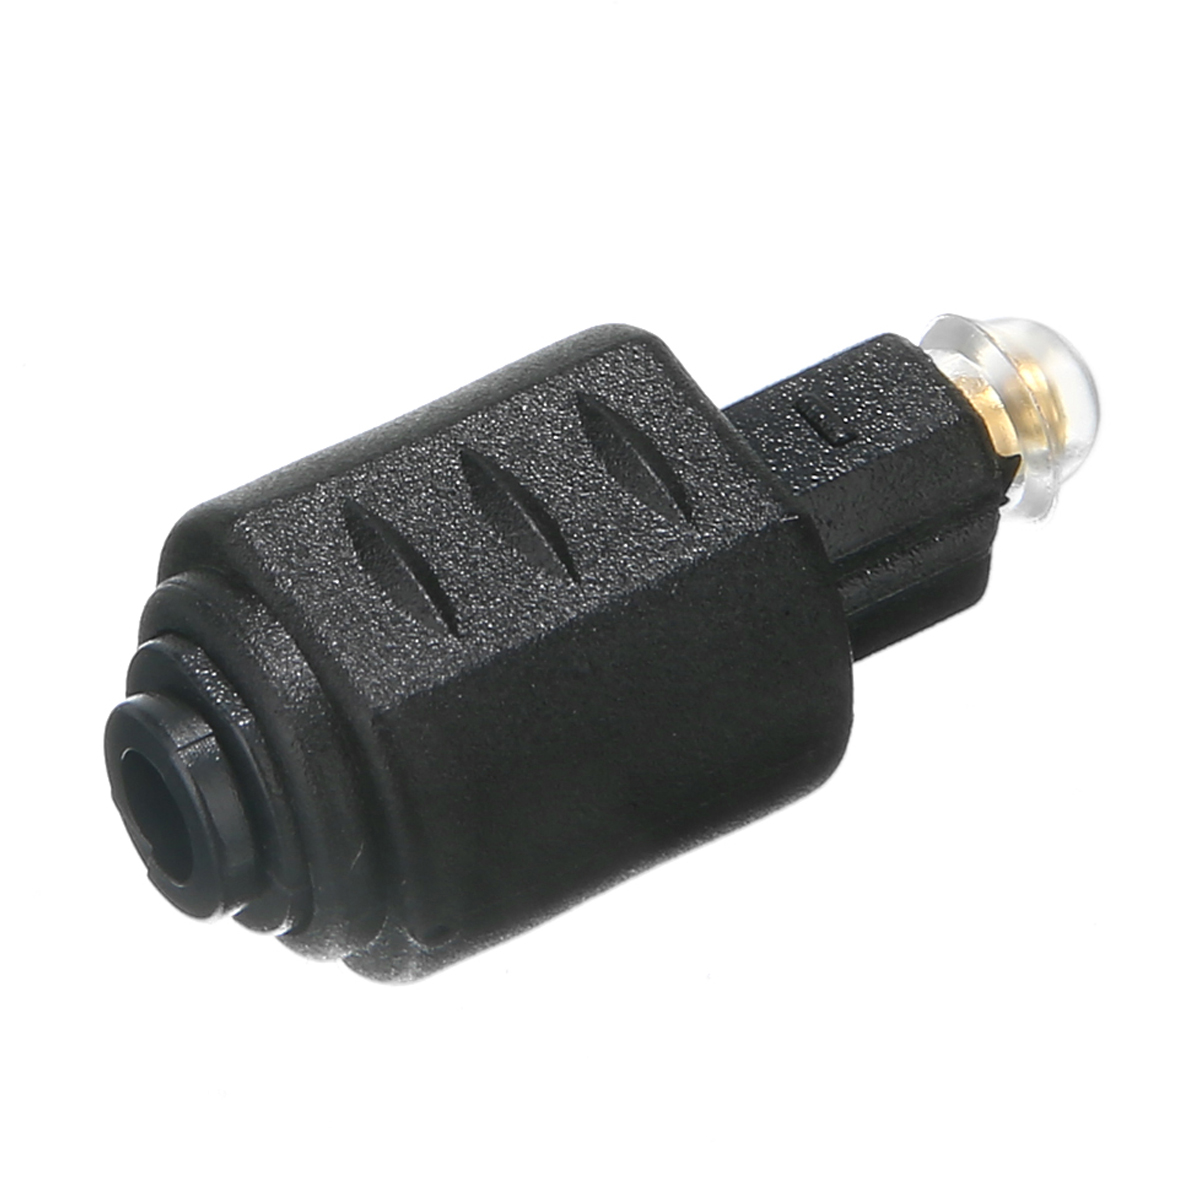 3.5mm Mini Jack Plug To Digital Toslink Cable Adapter Female To Male Digital Optical Audio Connector Adapter